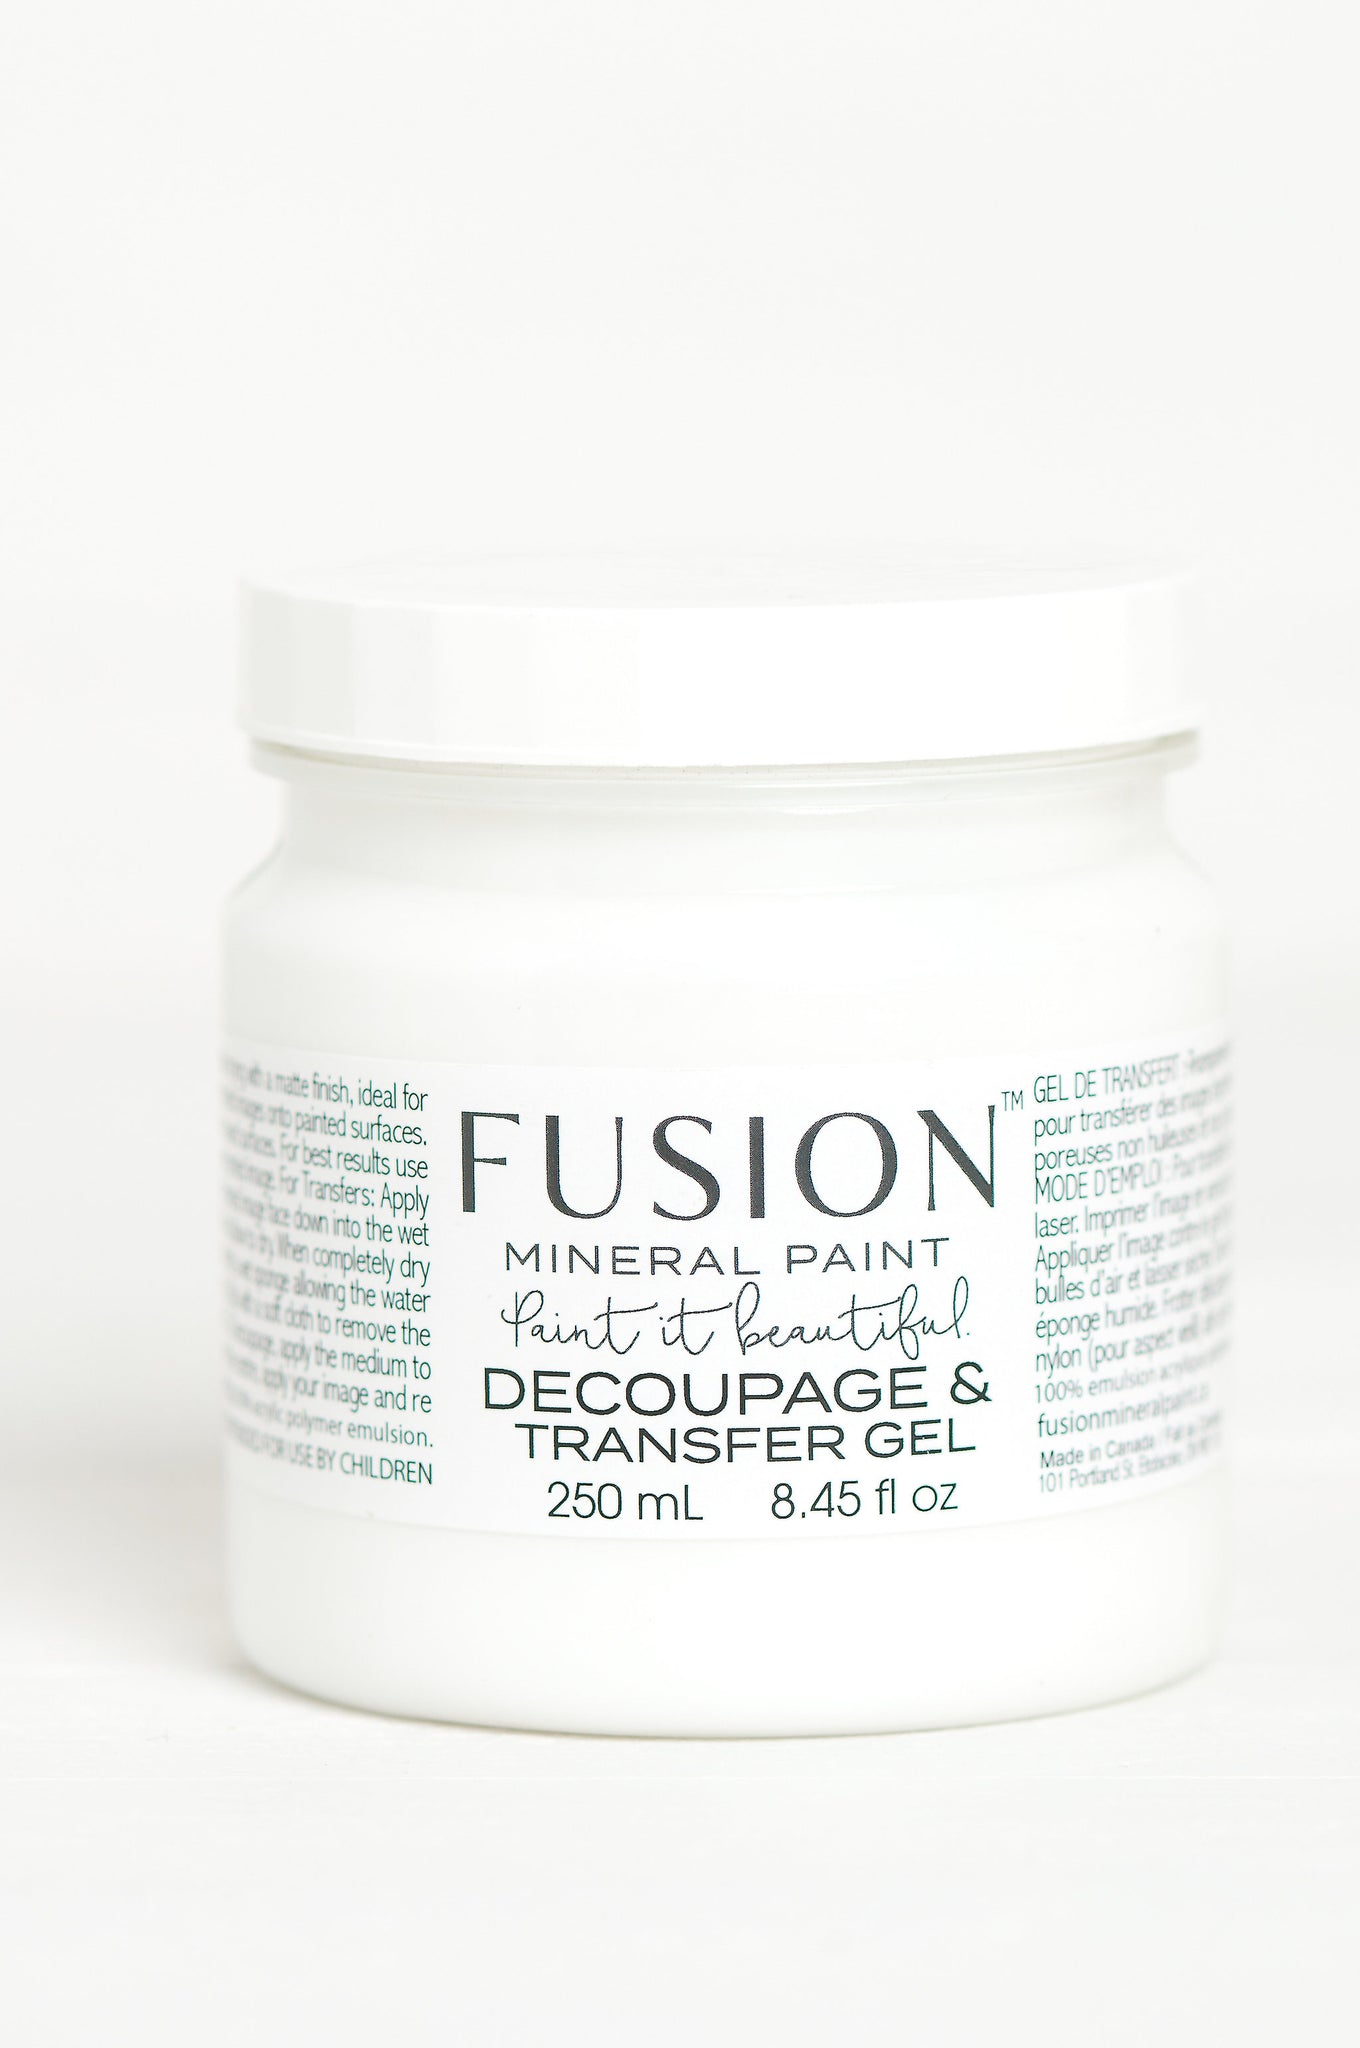 FUSION-DECOUPAGE-AND-TRANSFER-GEL-1.jpg